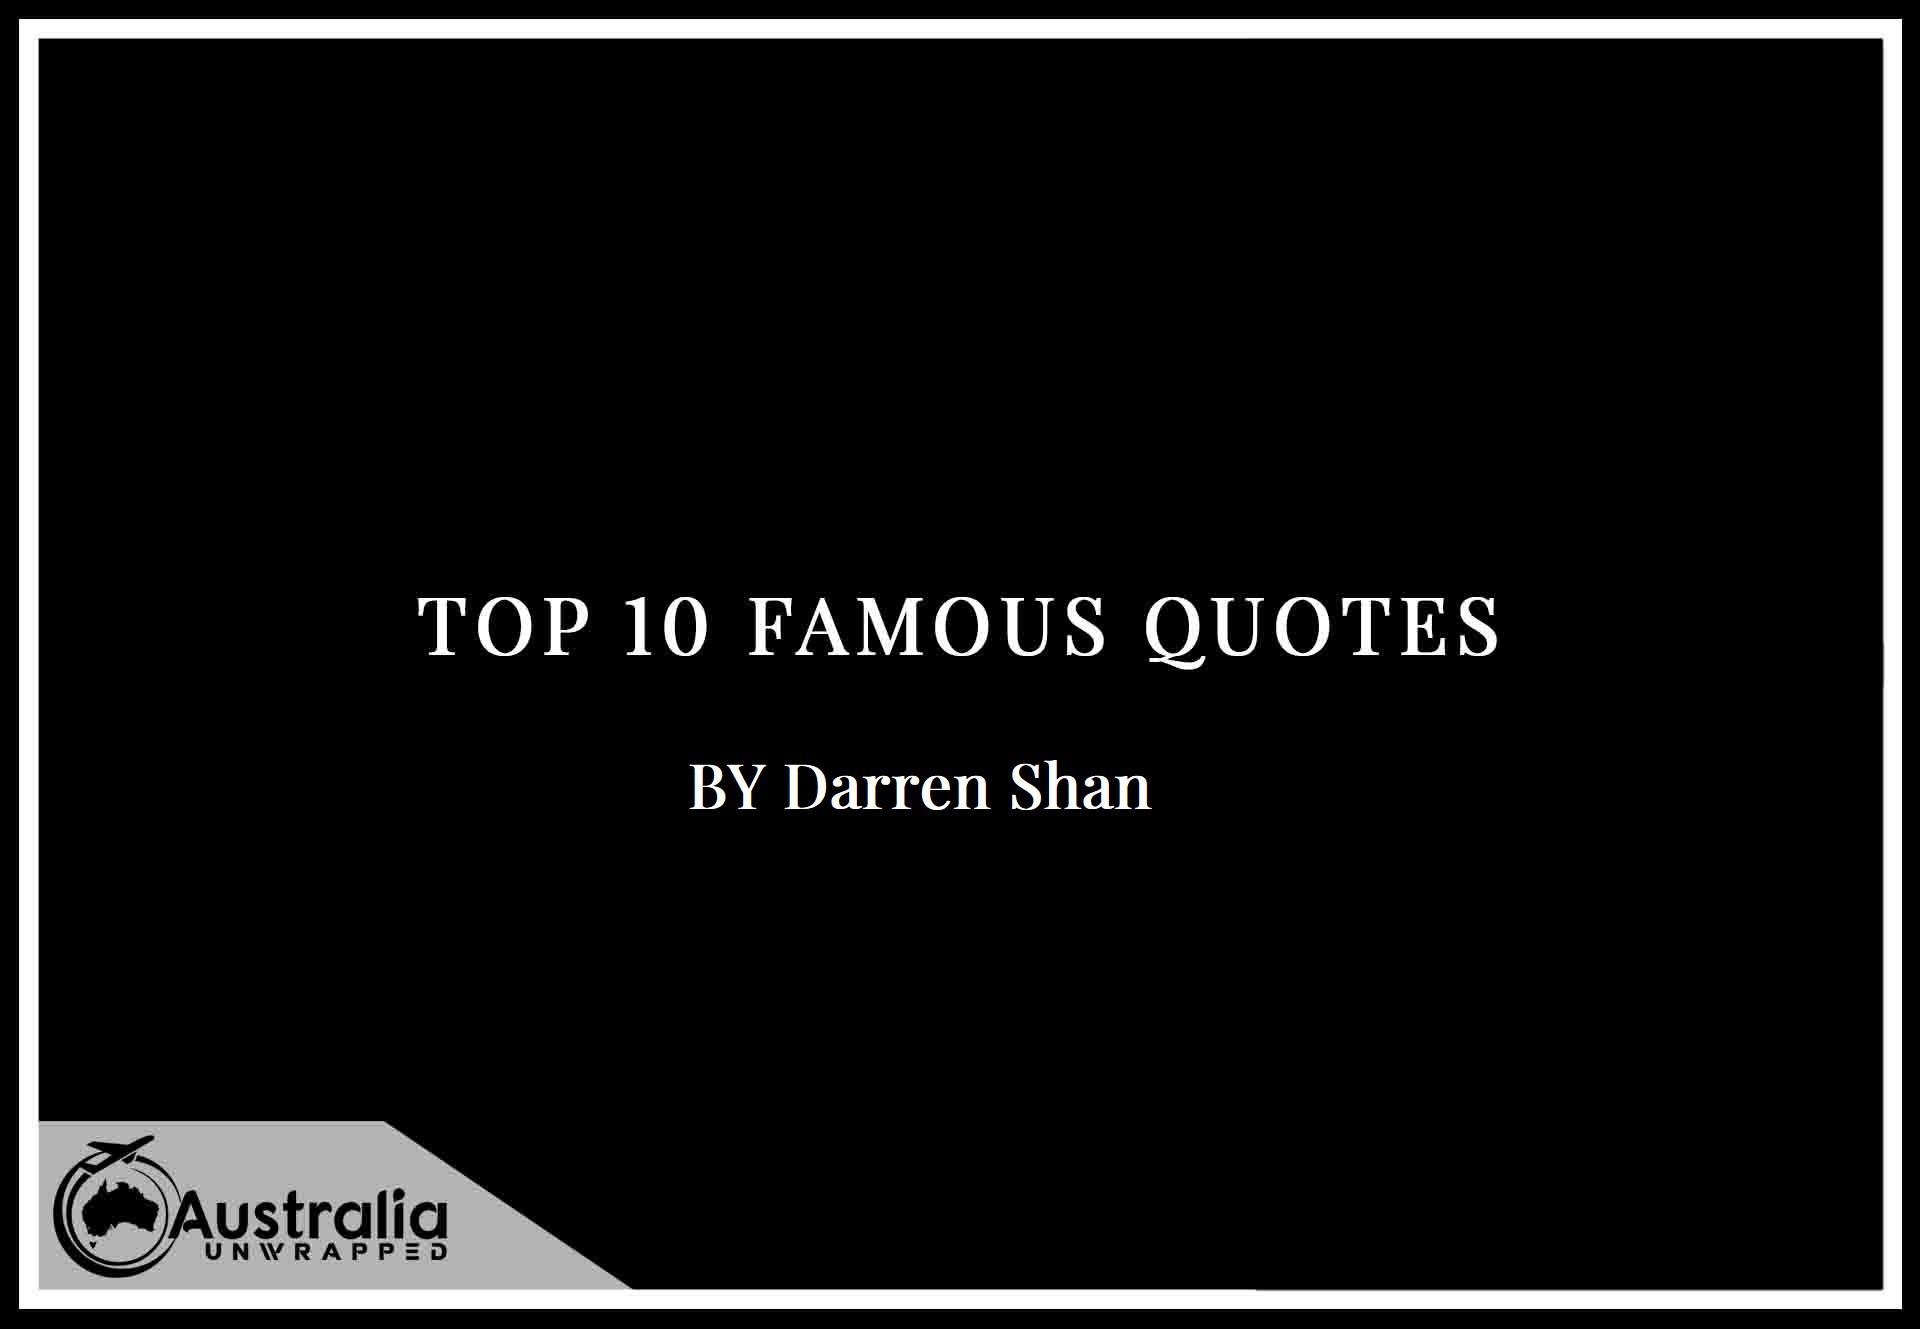 Top 10 Famous Quotes by Author Darren Shan